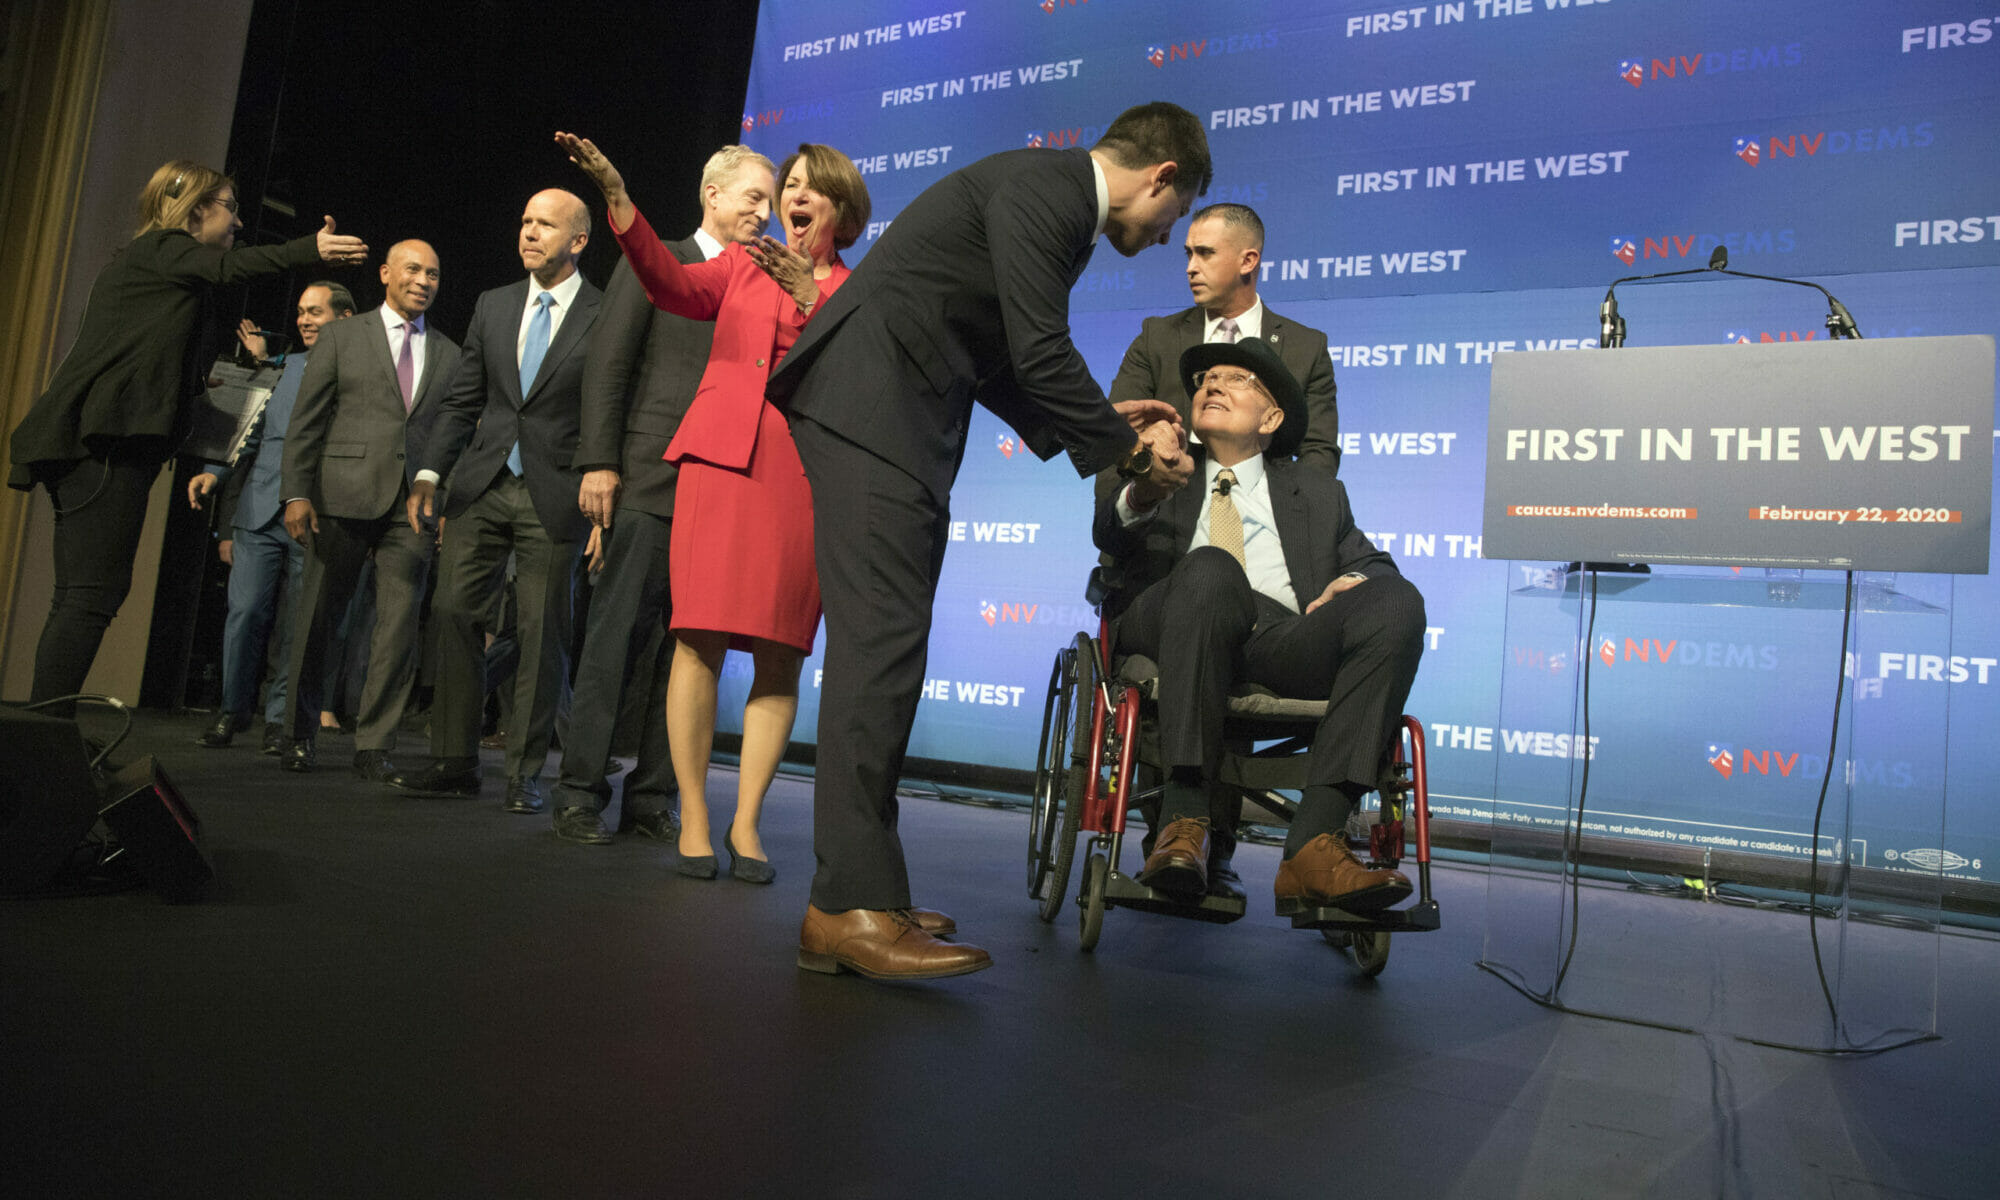 Harry Reid on stage in a wheelchair being greeted by candidates